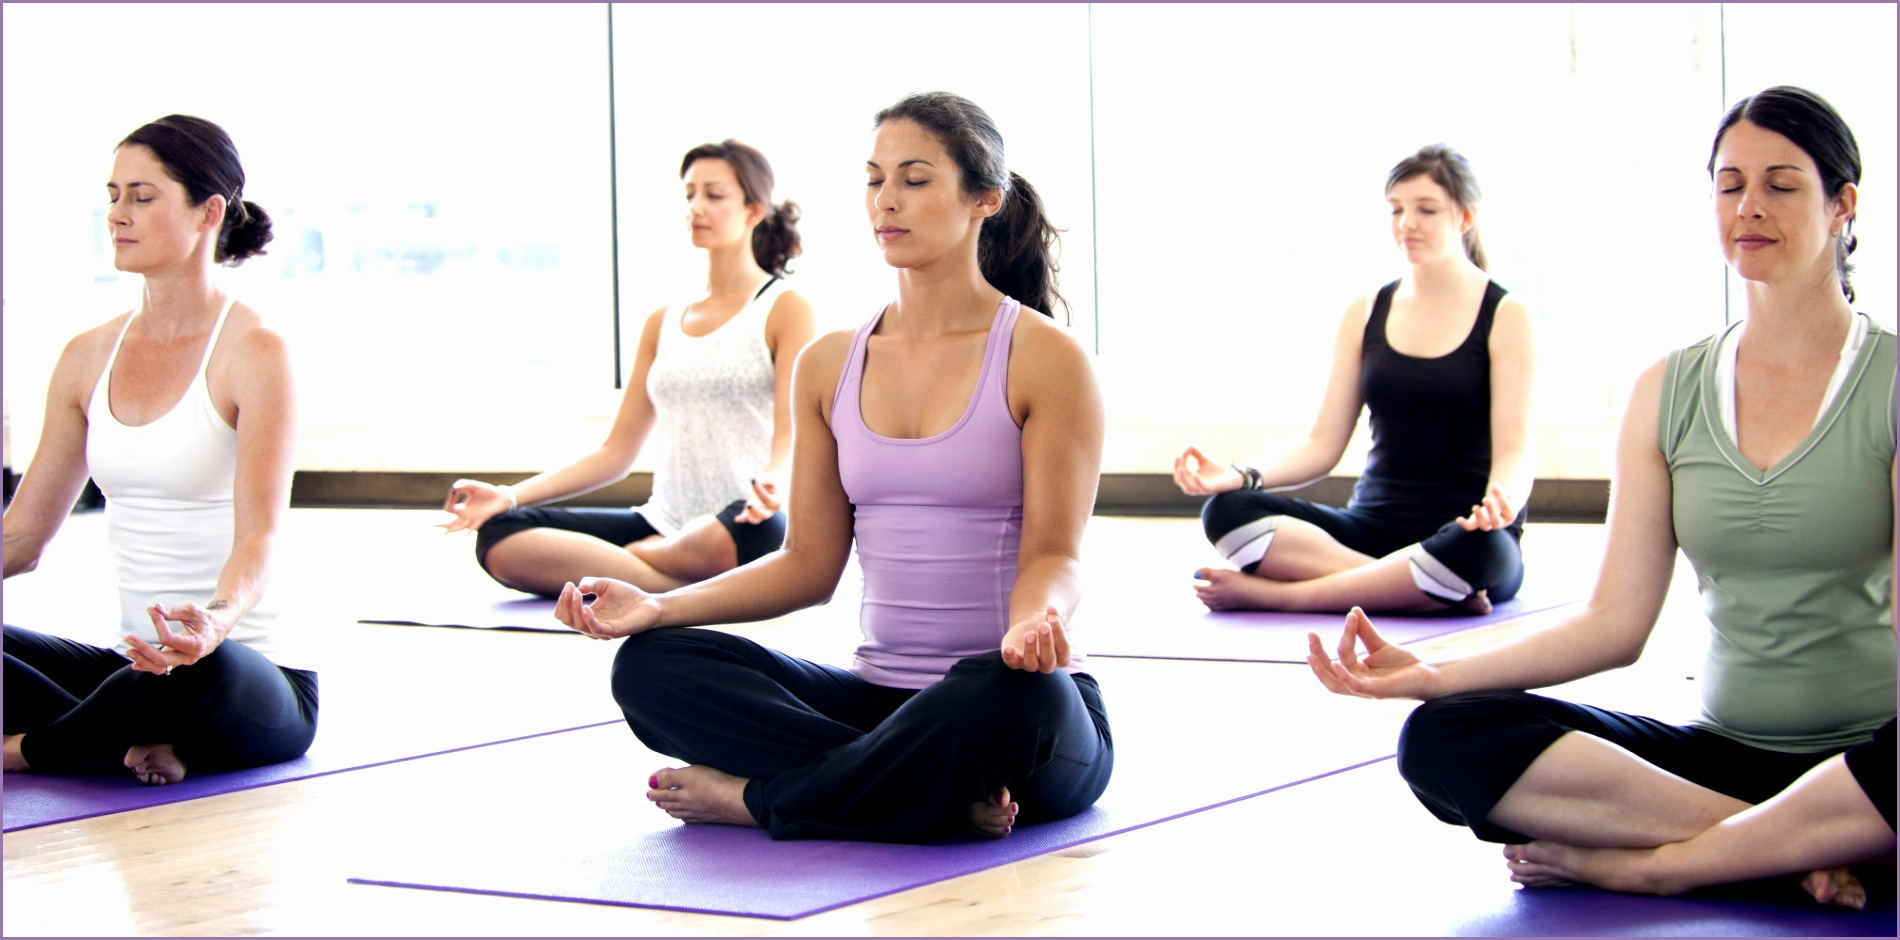 Bringing Mindfulness to Pregnancy Yoga – CPD Workshop for Yoga Teachers